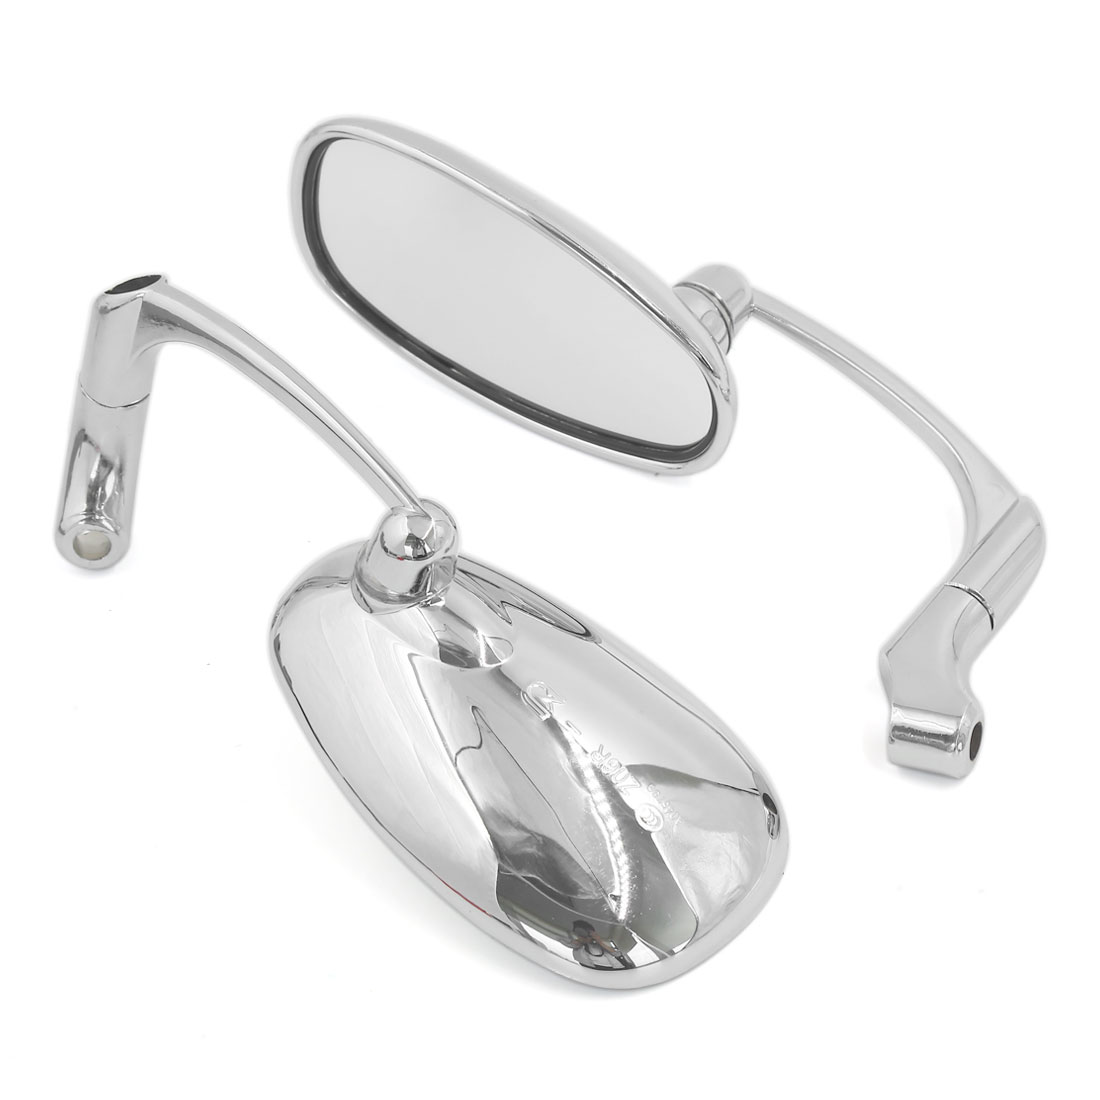 Pair Chrome Oval Shaped Flat Glass Motorcycle Rearview Side Mirror for Suzuki ZB